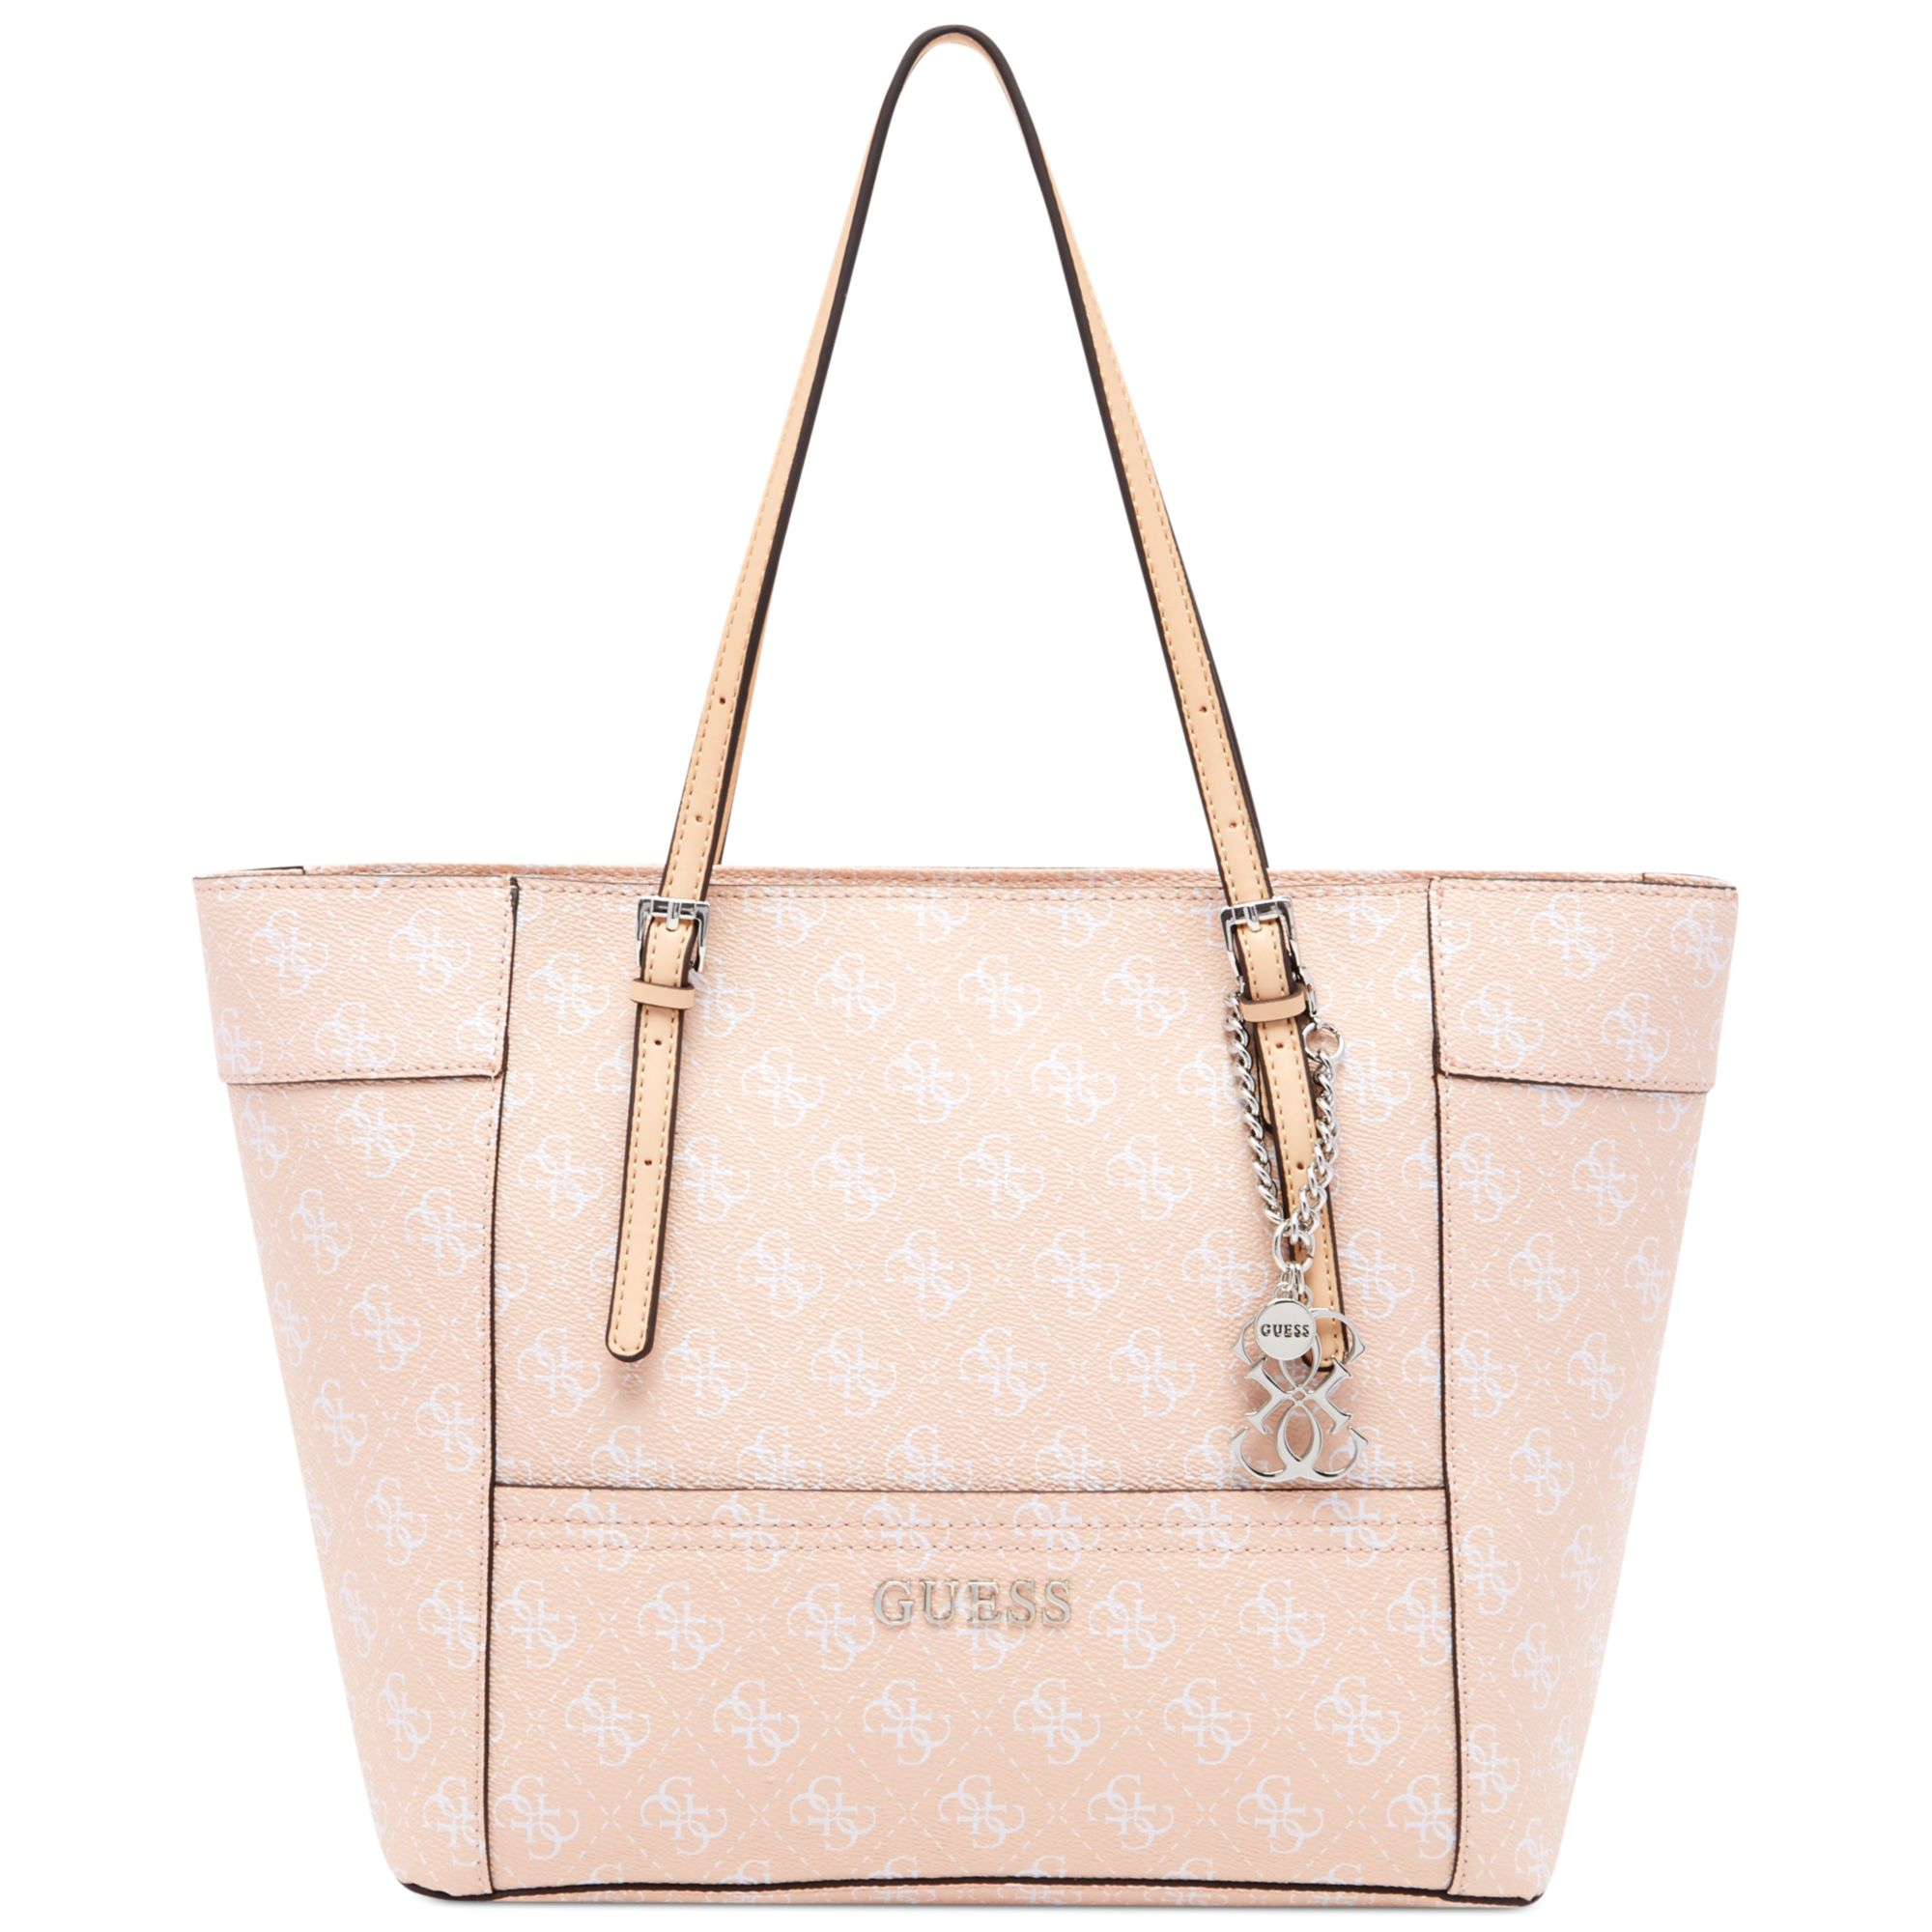 Lyst - Guess Delaney Signature Small Classic